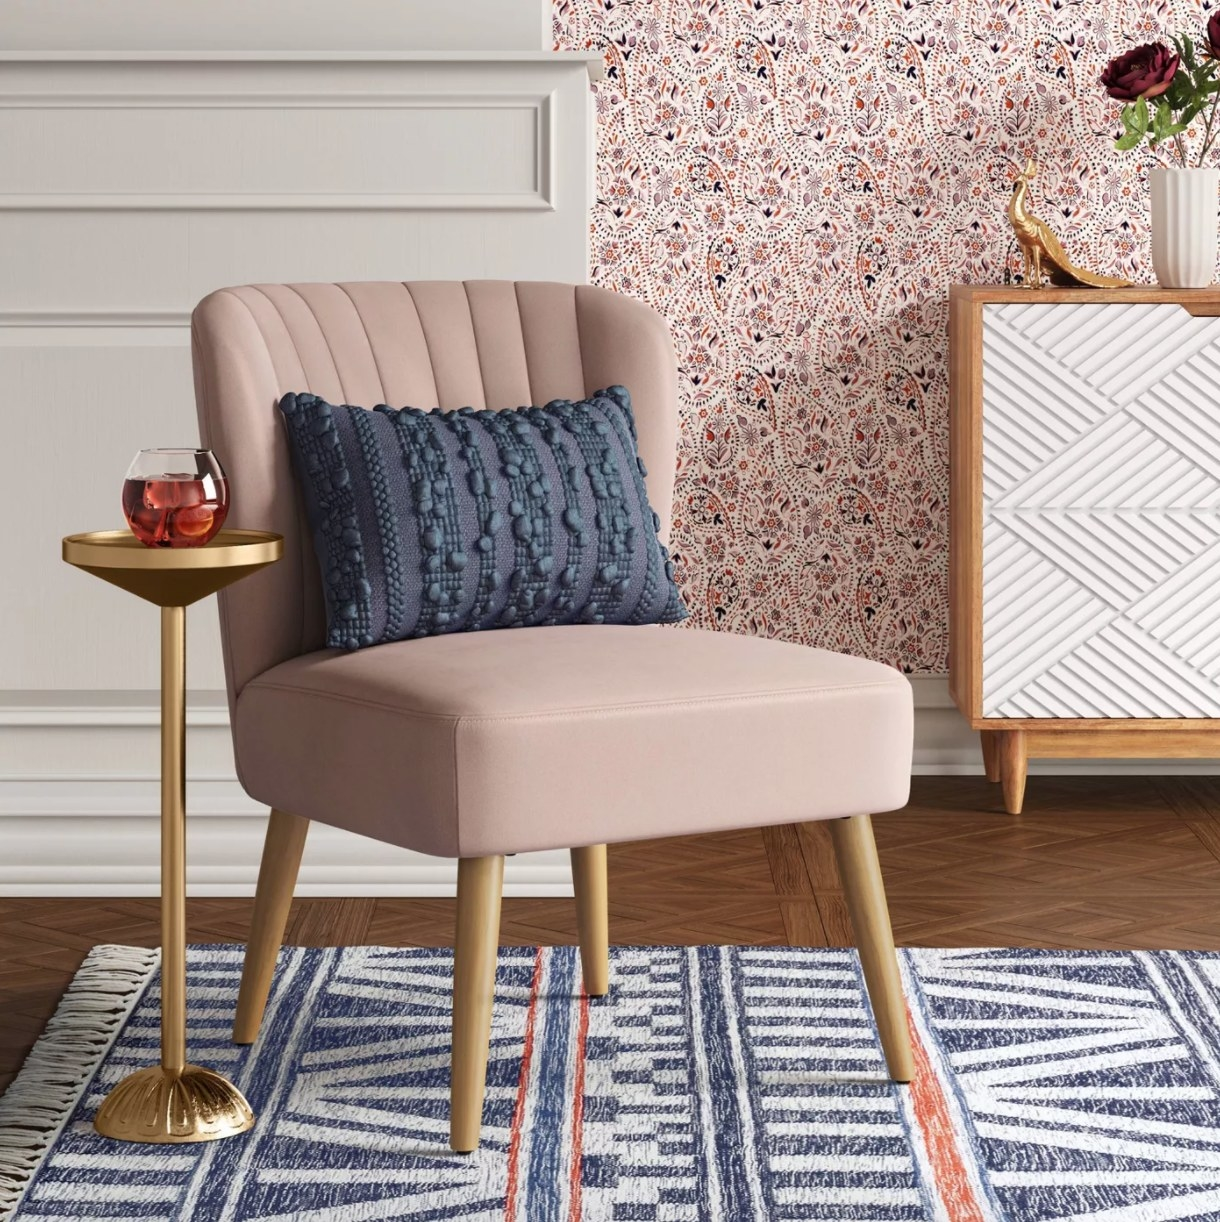 a blush colored upholstered accent chair